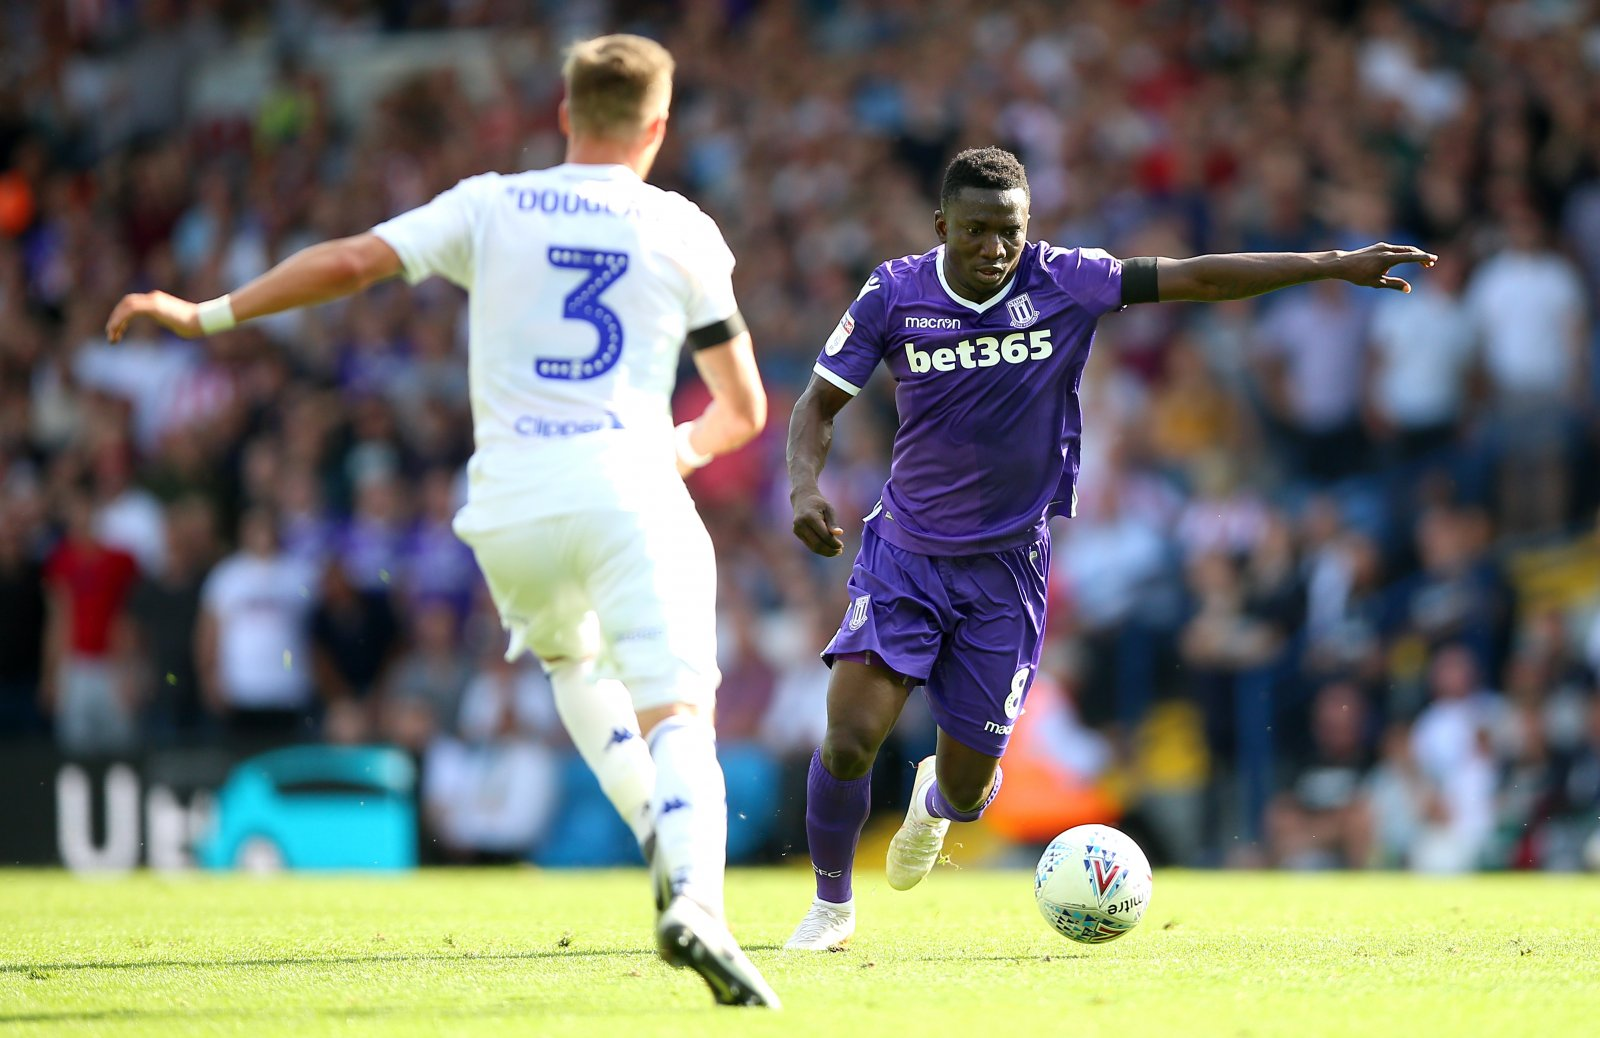 City's win over Rovers is well deserved, says Etebo